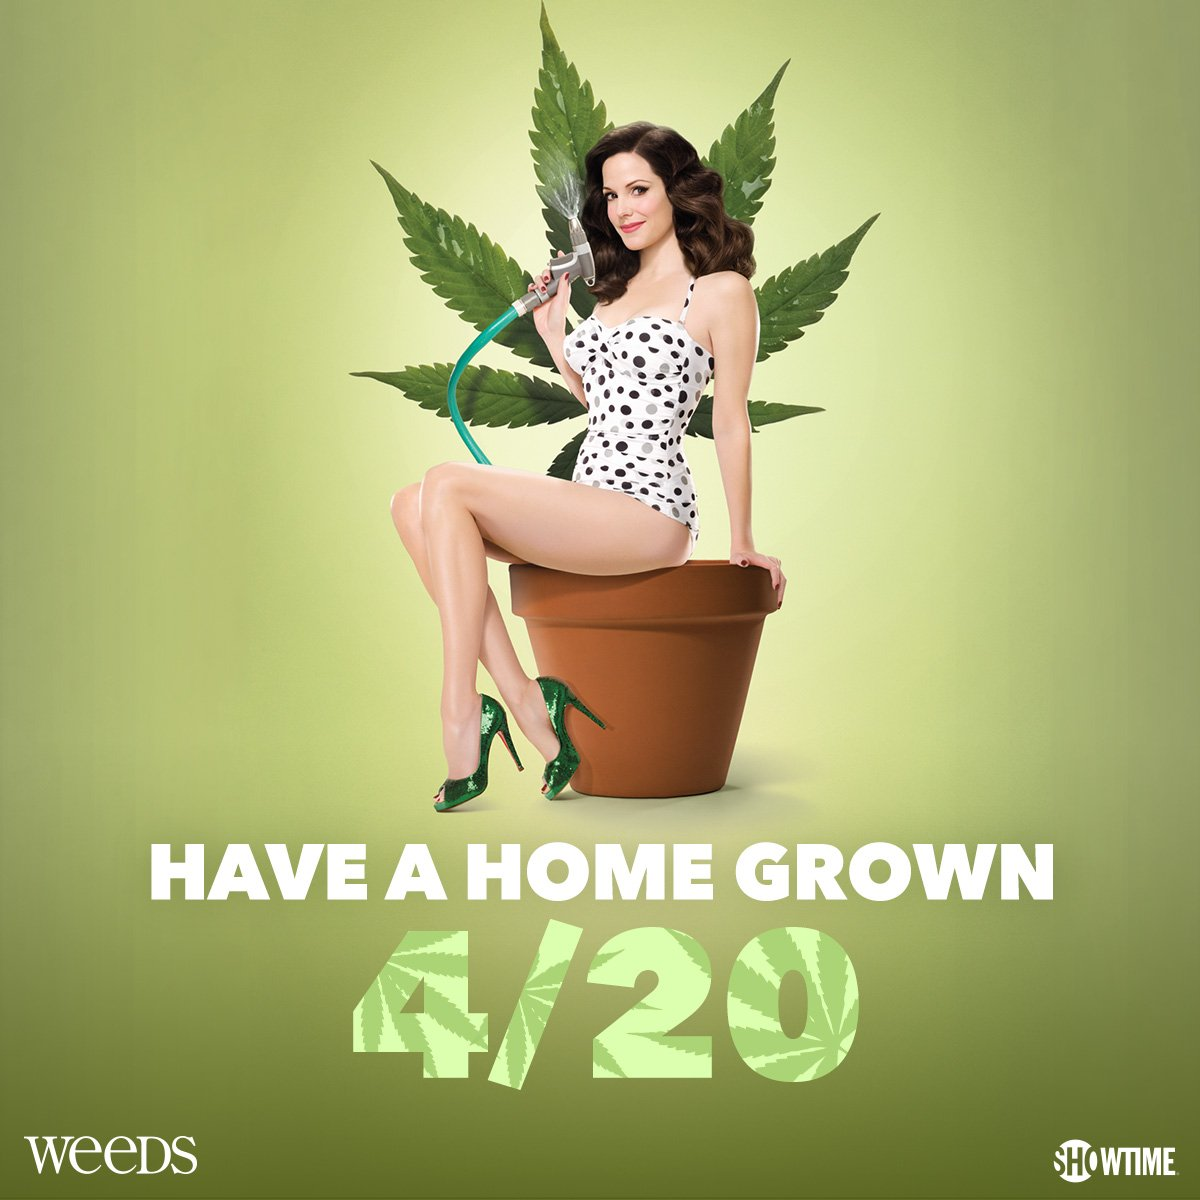 Grab some munchies & get ready for a hazy night of hilarity with #Weeds on https://t.co/pvDSrv0YpY. #Happy420 https://t.co/1jTFT1DS52